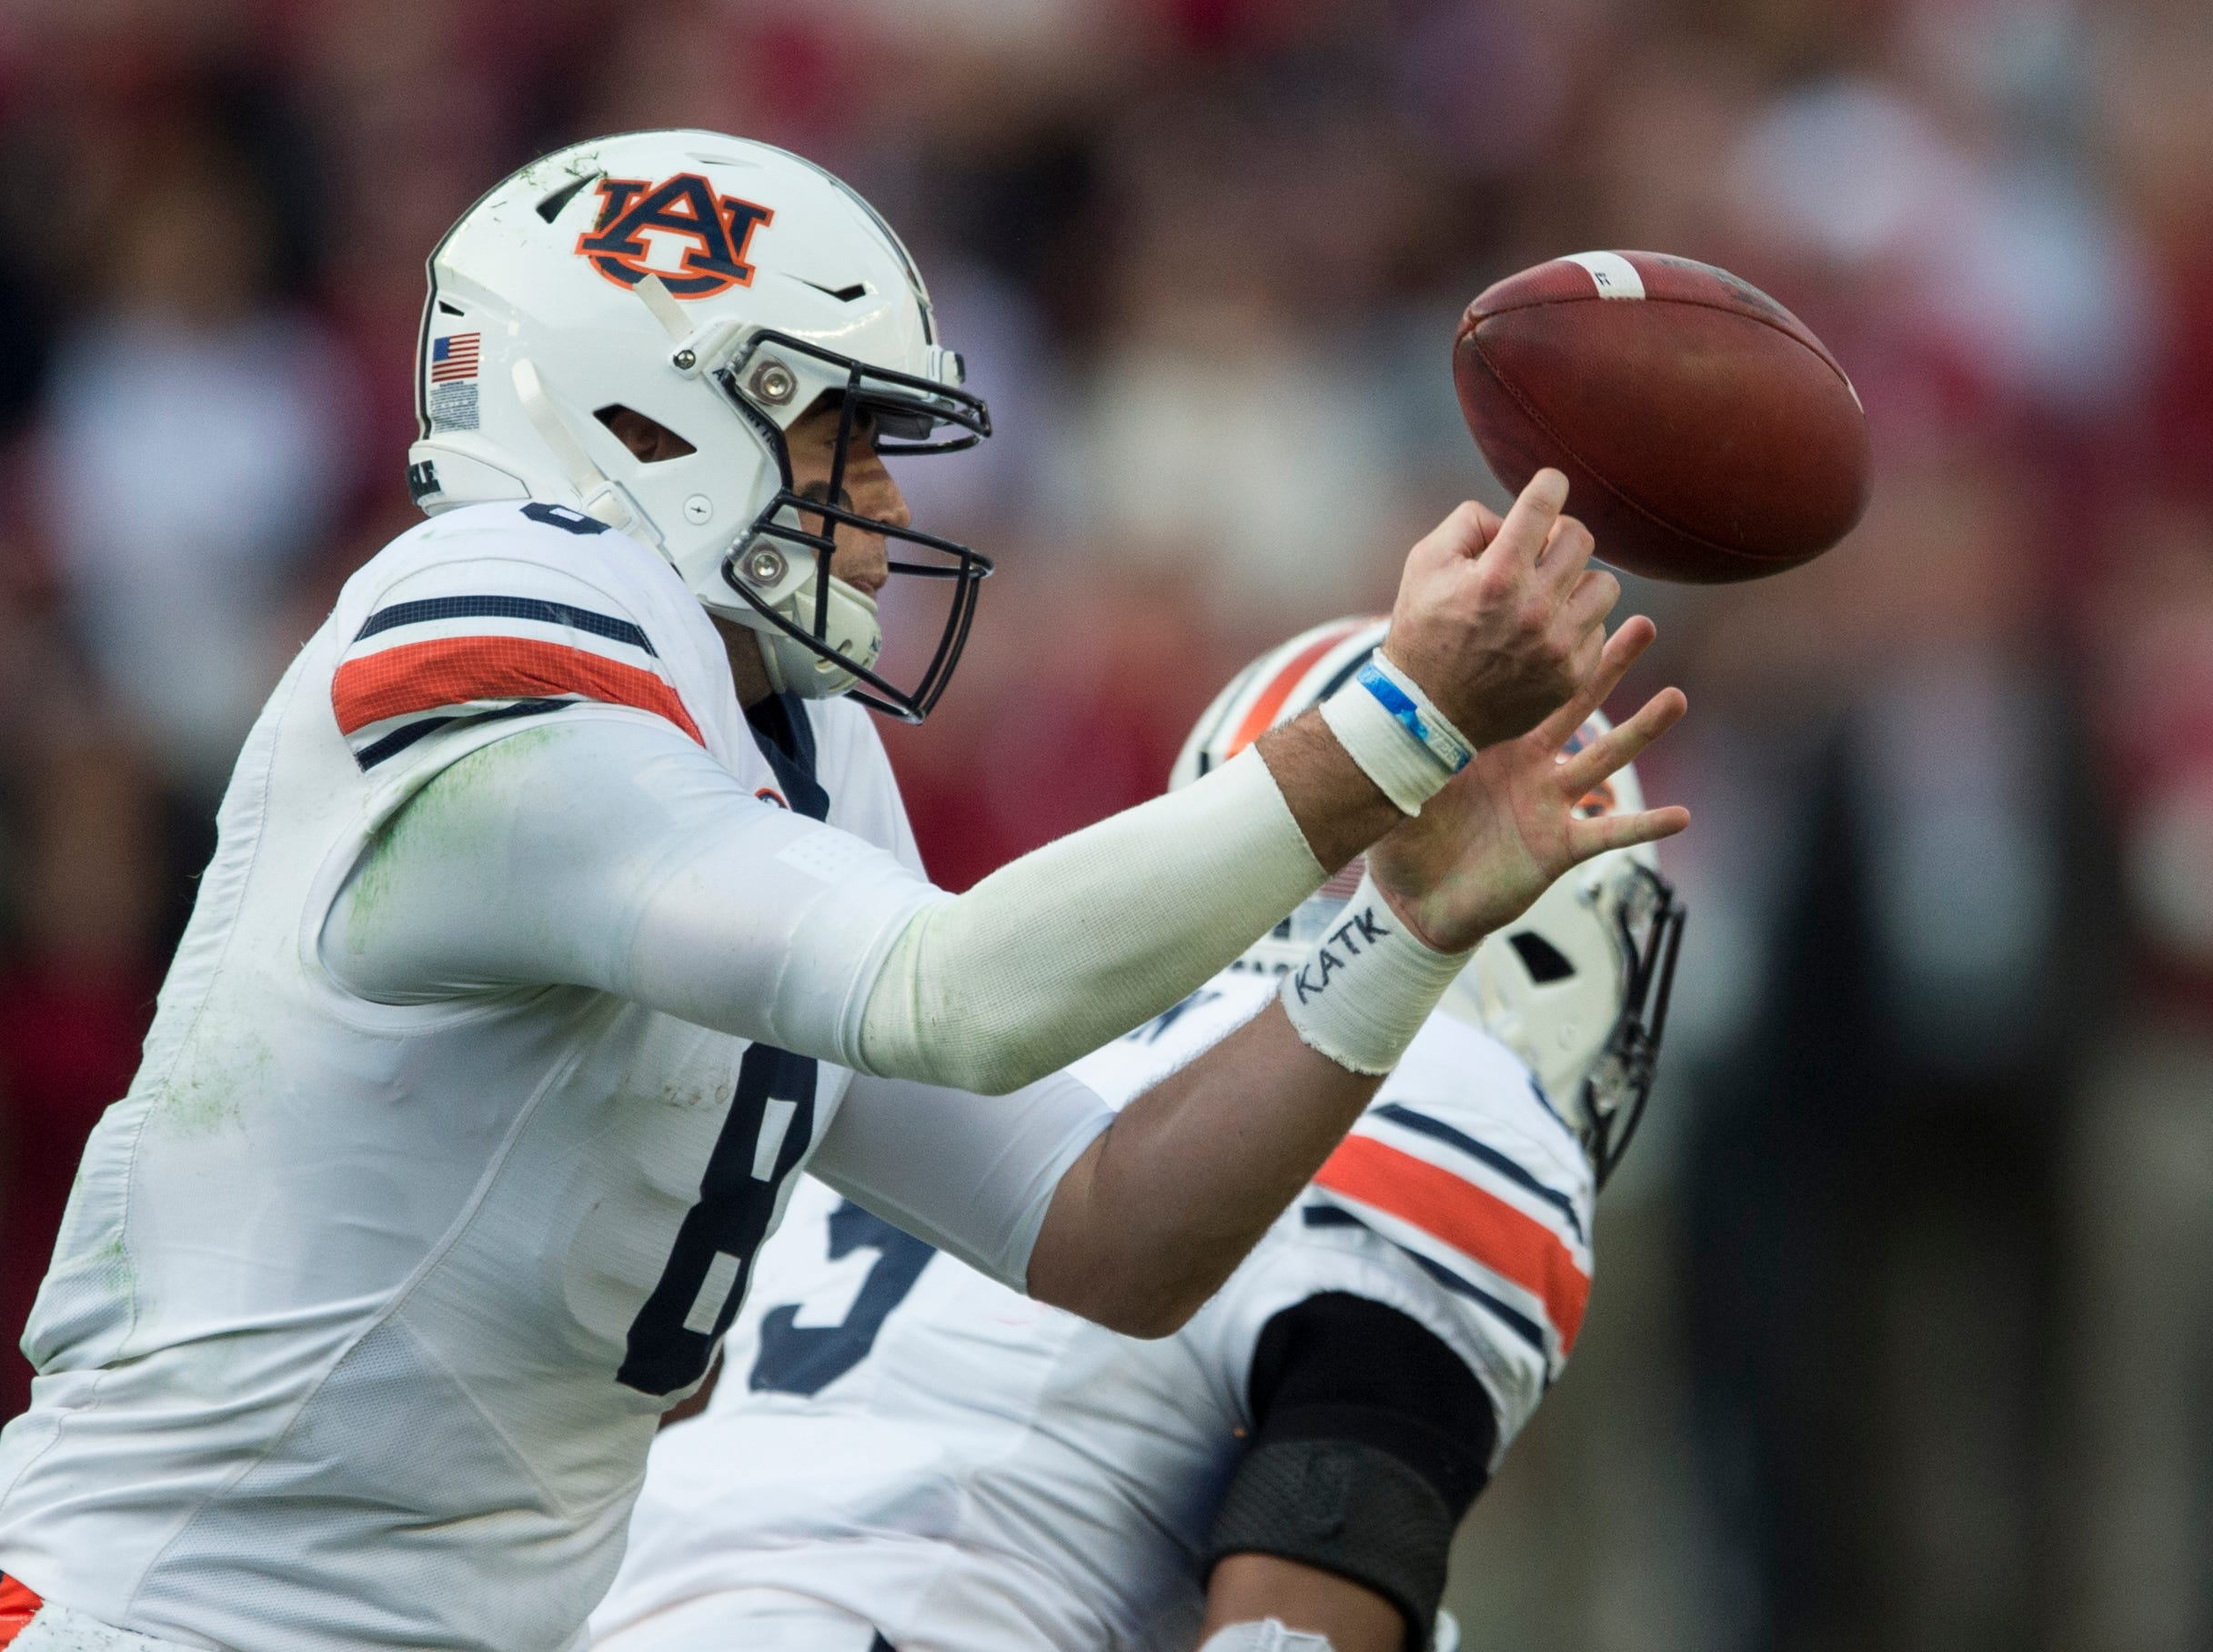 Auburn quarterback Jarrett Stidham (8) has the ball slip out of his hands as he throws the ball during the Iron Bowl at Bryant-Denny Stadium in Tuscaloosa, Ala., on Saturday, Nov. 24, 2018. Alabama leads Auburn 17-14 at halftime.